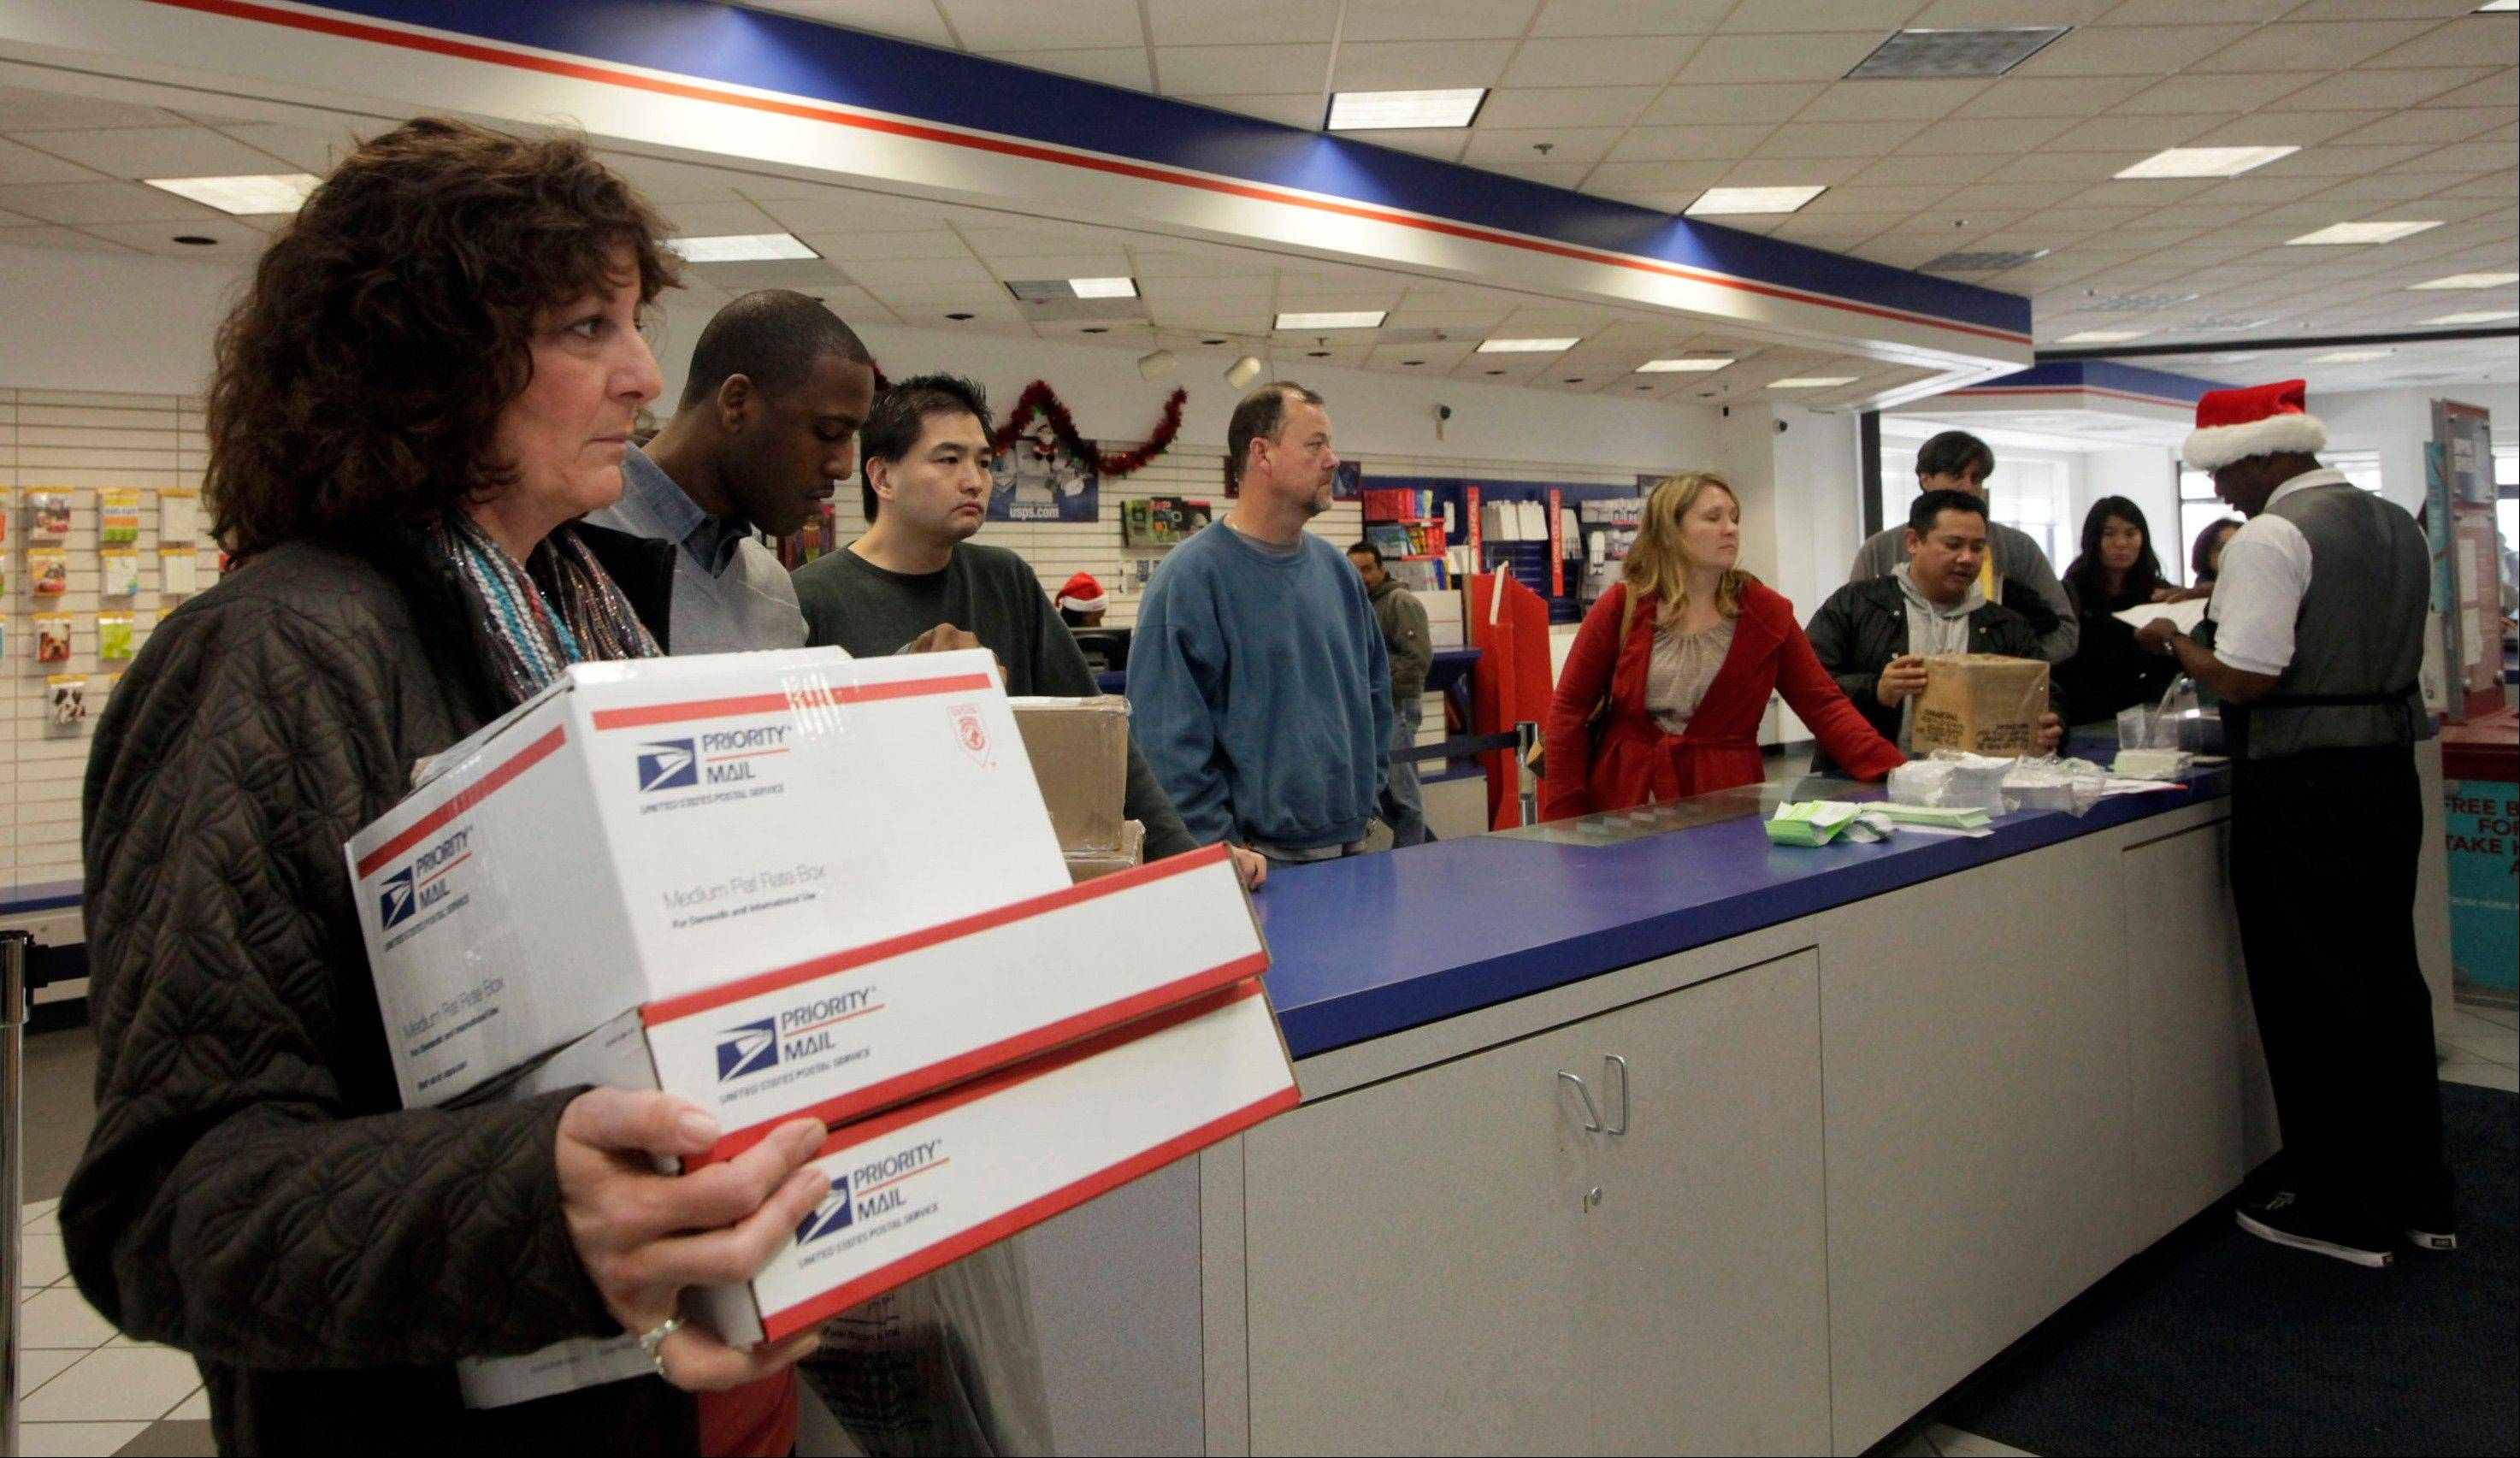 All Post Offices nationwide will be open Christmas Eve, Saturday, Dec. 24, and New Year's Eve, Saturday, Dec. 31. Most will have shortened retail lobby hours and will close at noon. Mail delivery for Dec. 24 and Dec. 31 will be the same as any other Saturday. Offices will be closed on Dec. 26 and Jan. 2.